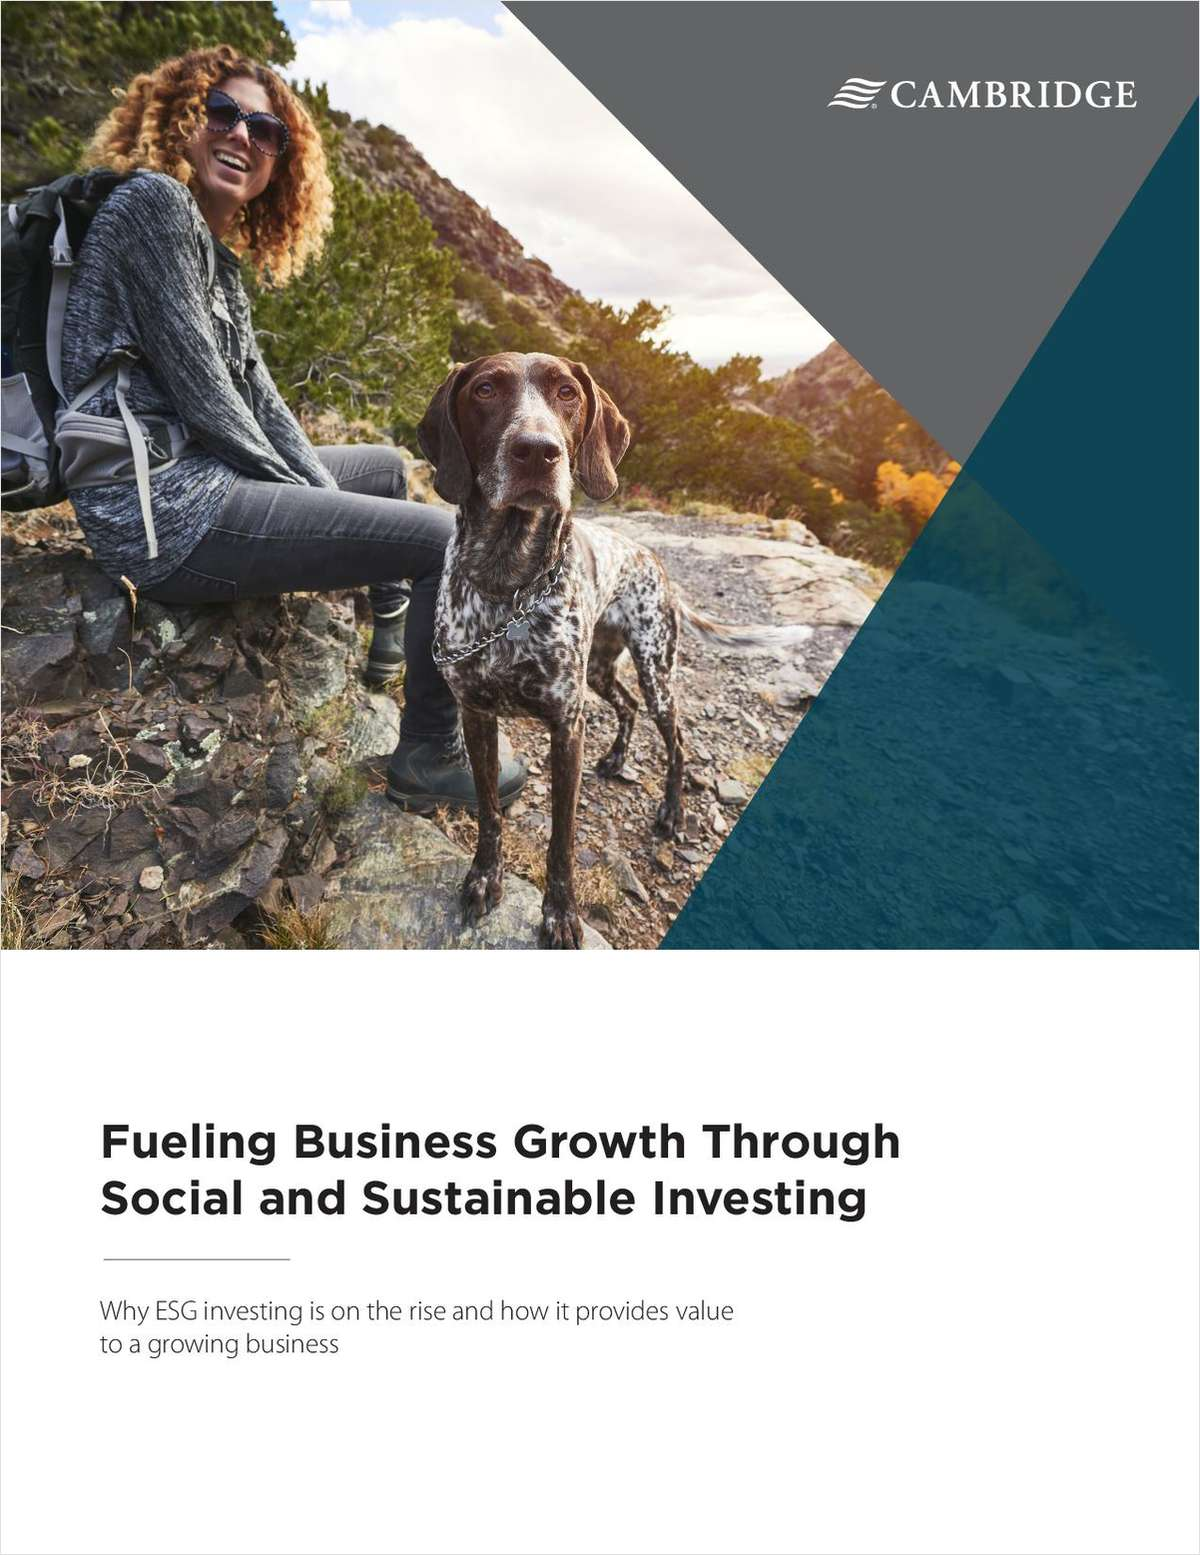 Fueling Business Growth Through Social and Sustainable Investing